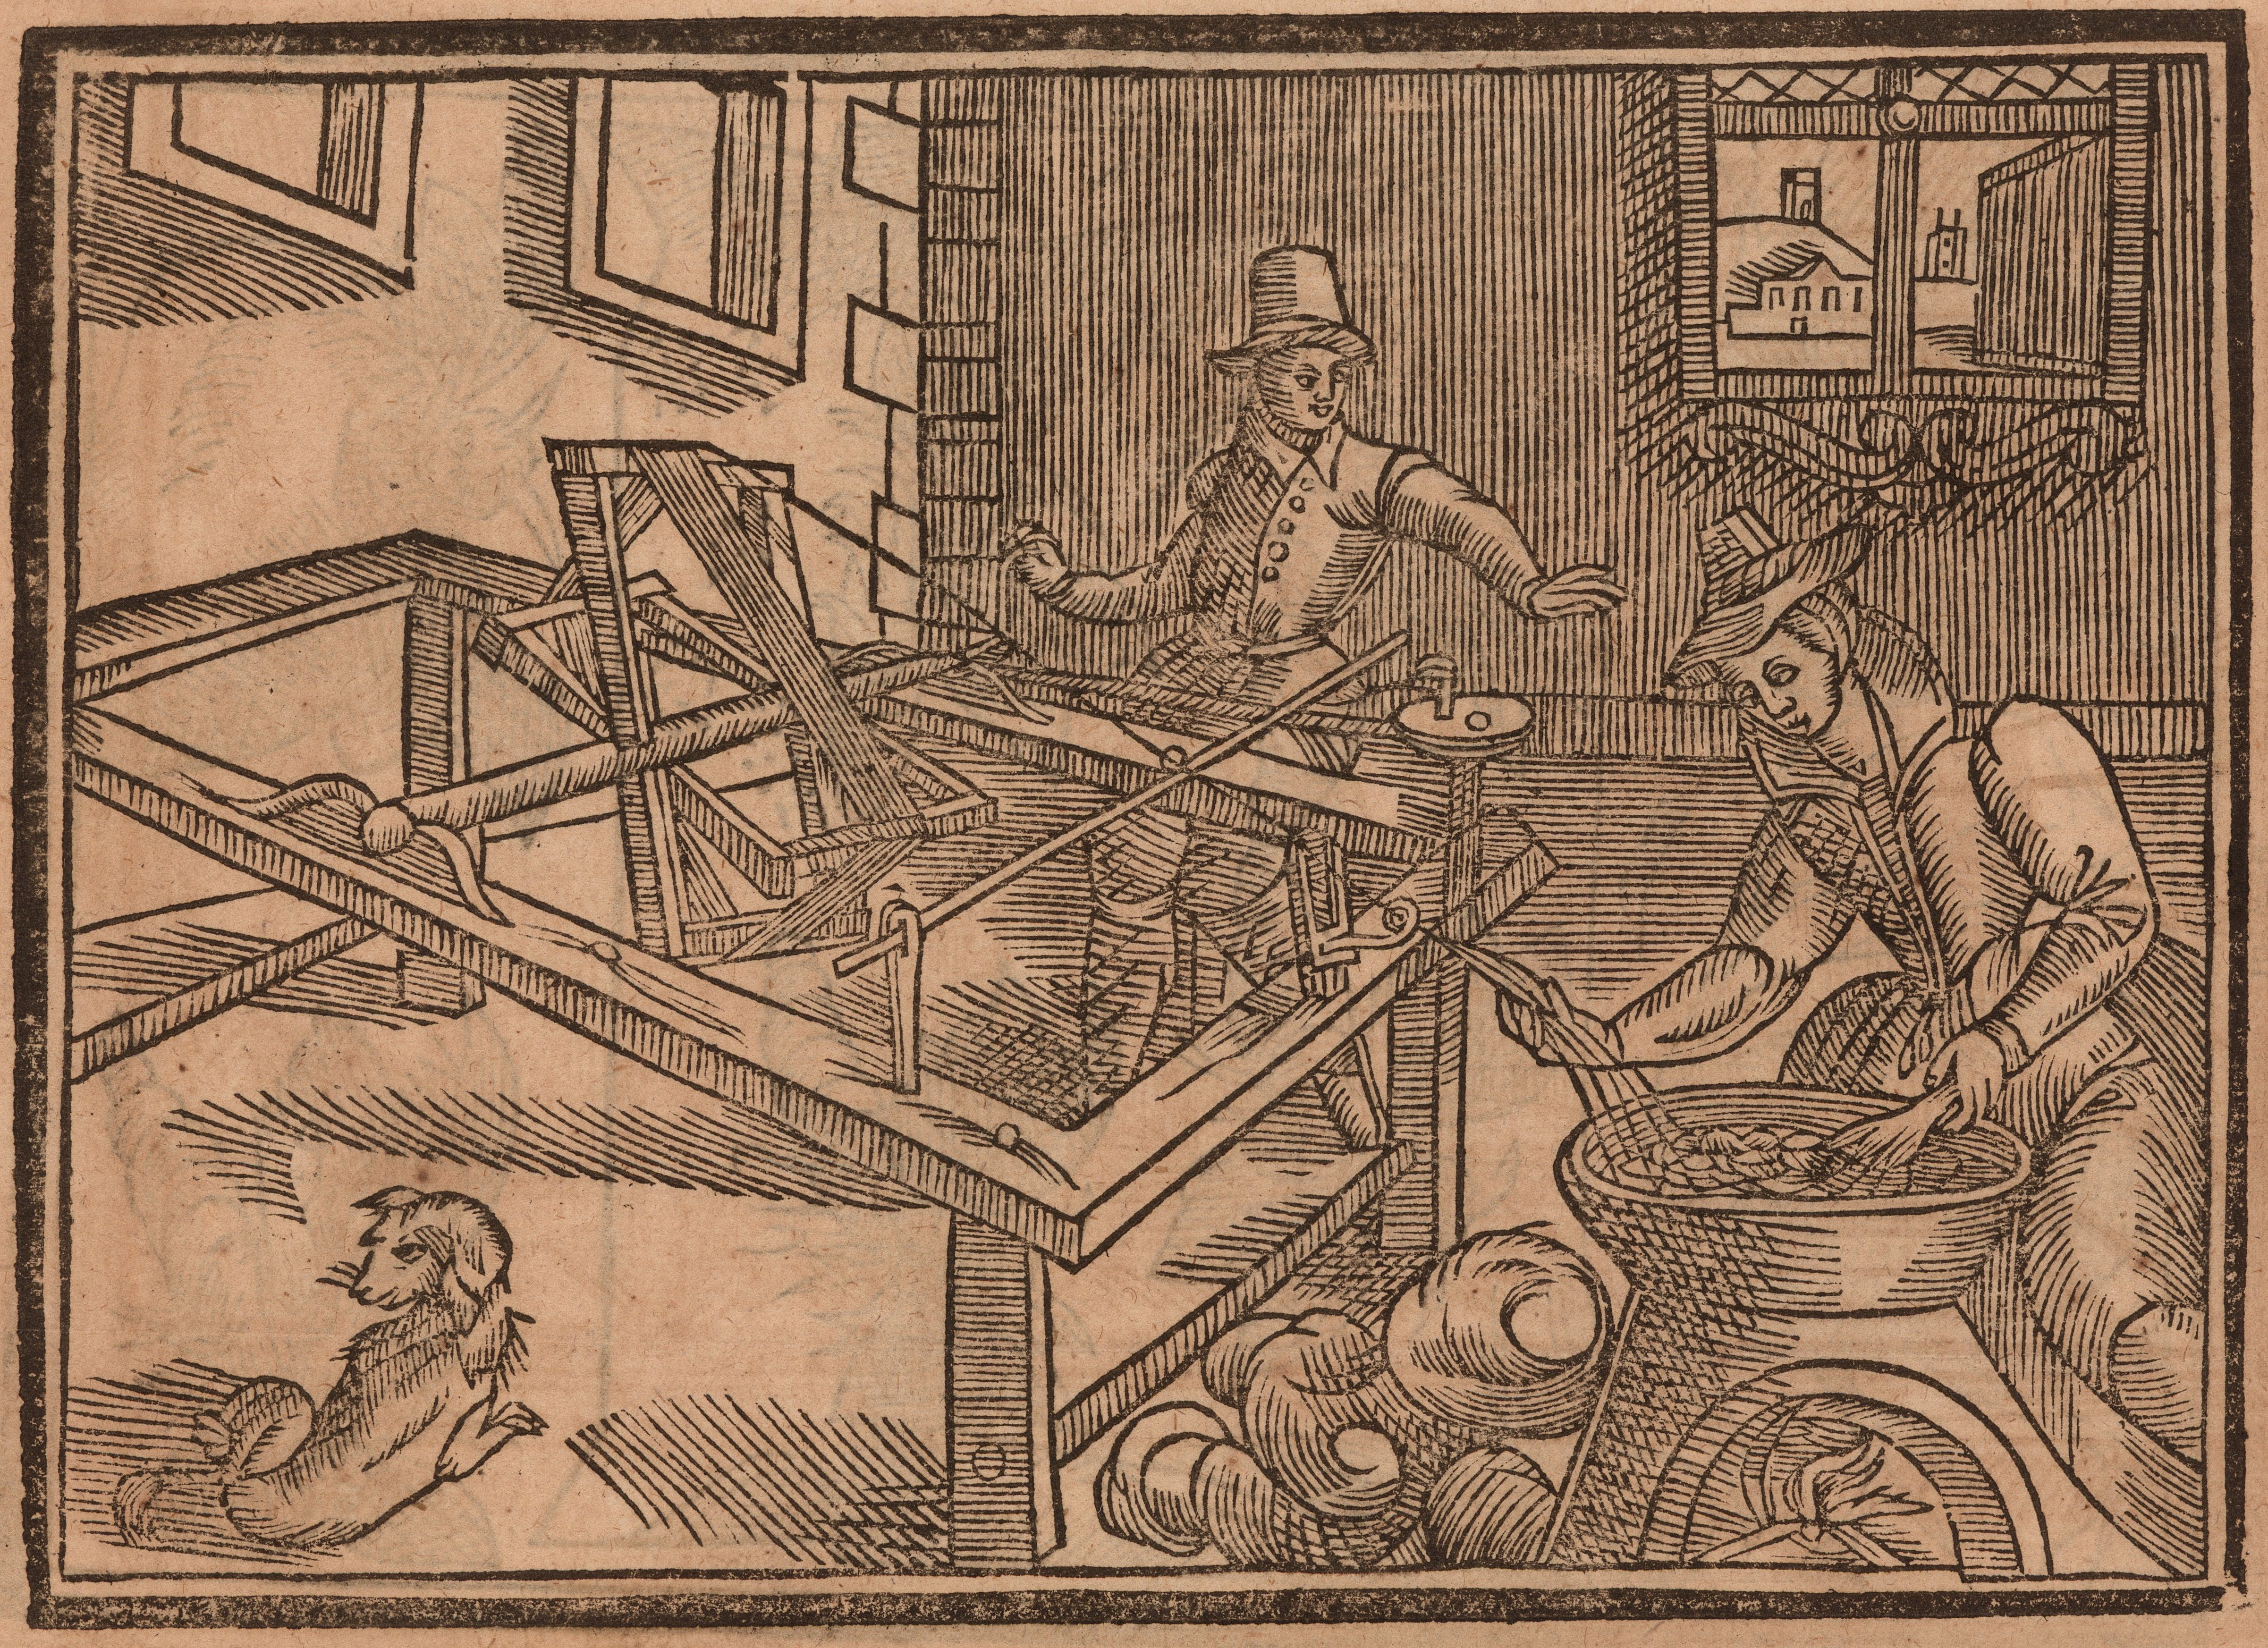 Woodcut of a man and woman making silk thread.